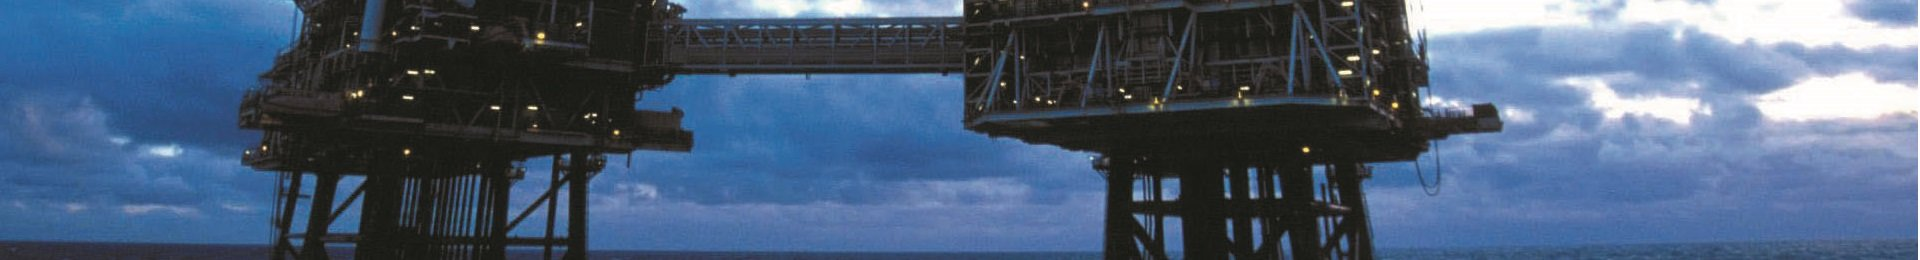 industry-onshore-offshore